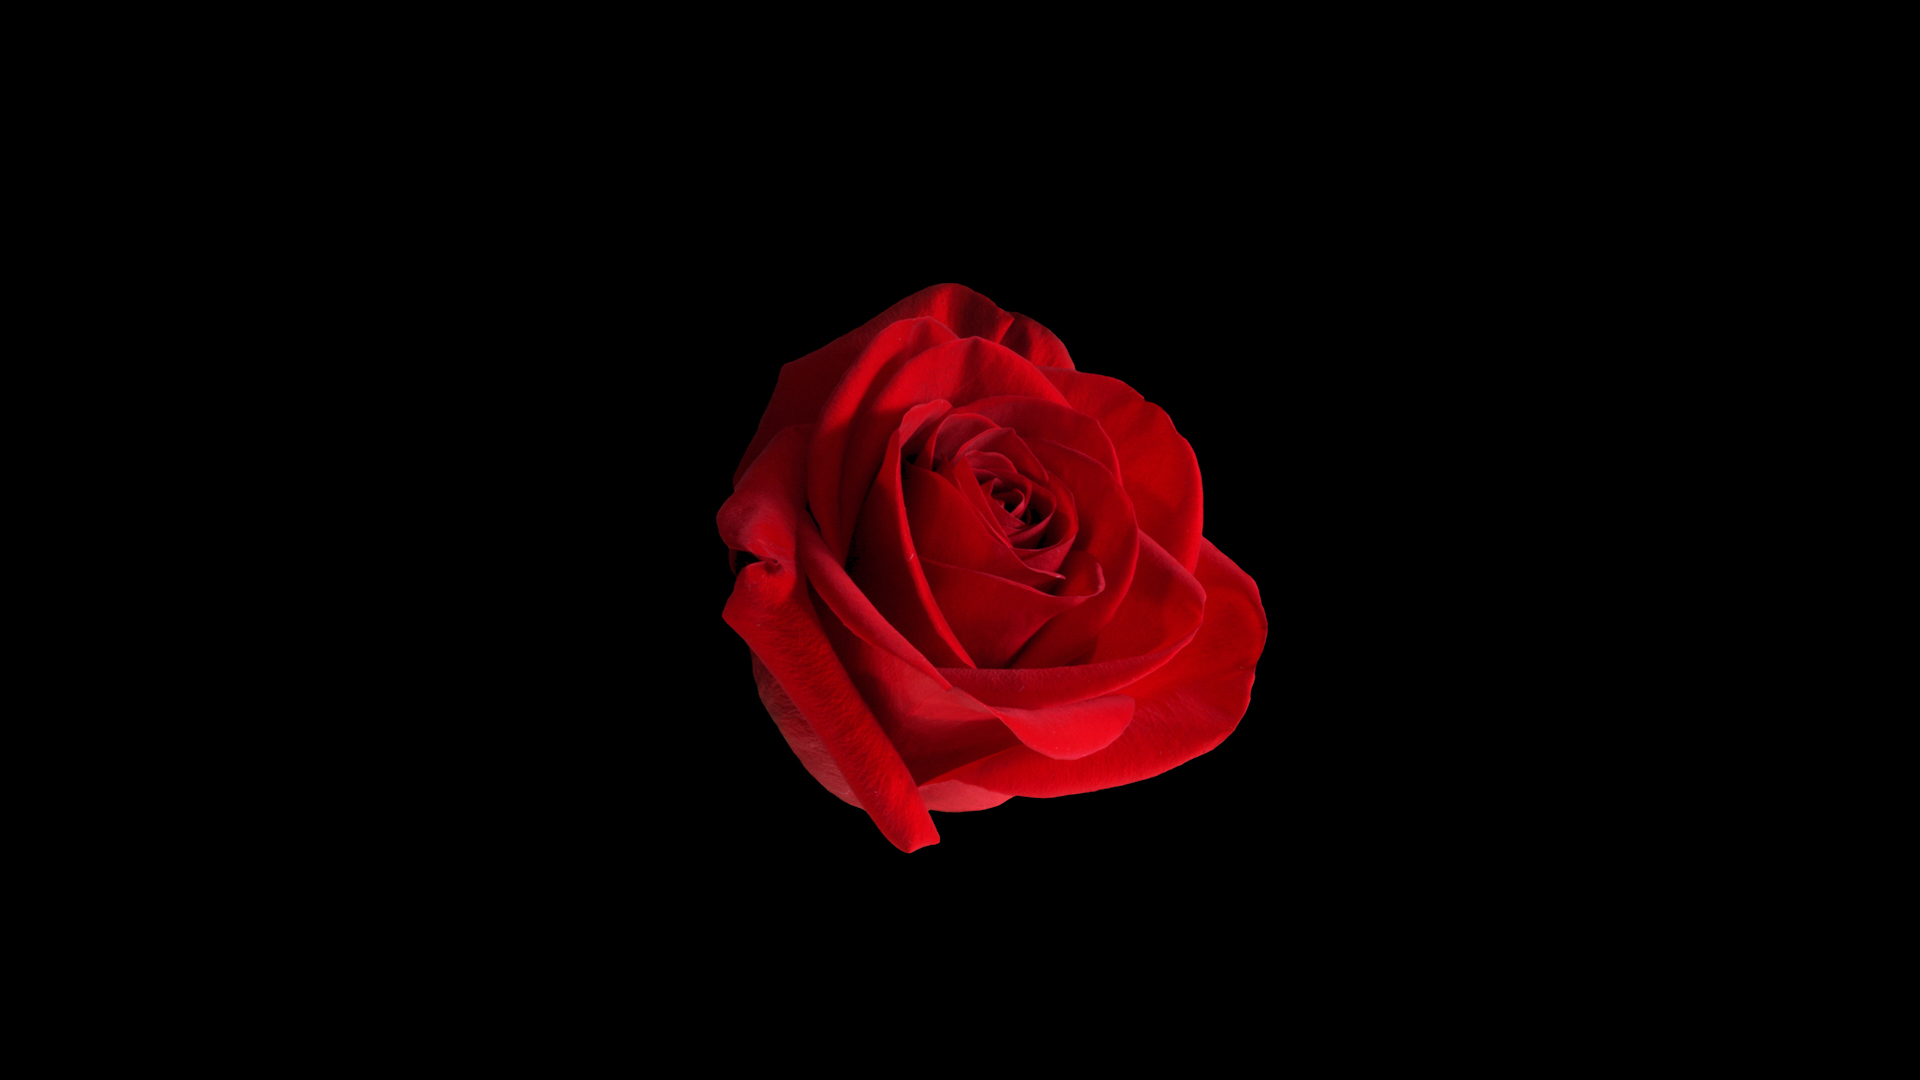 Red Rose Wallpaper 1920 X 1080